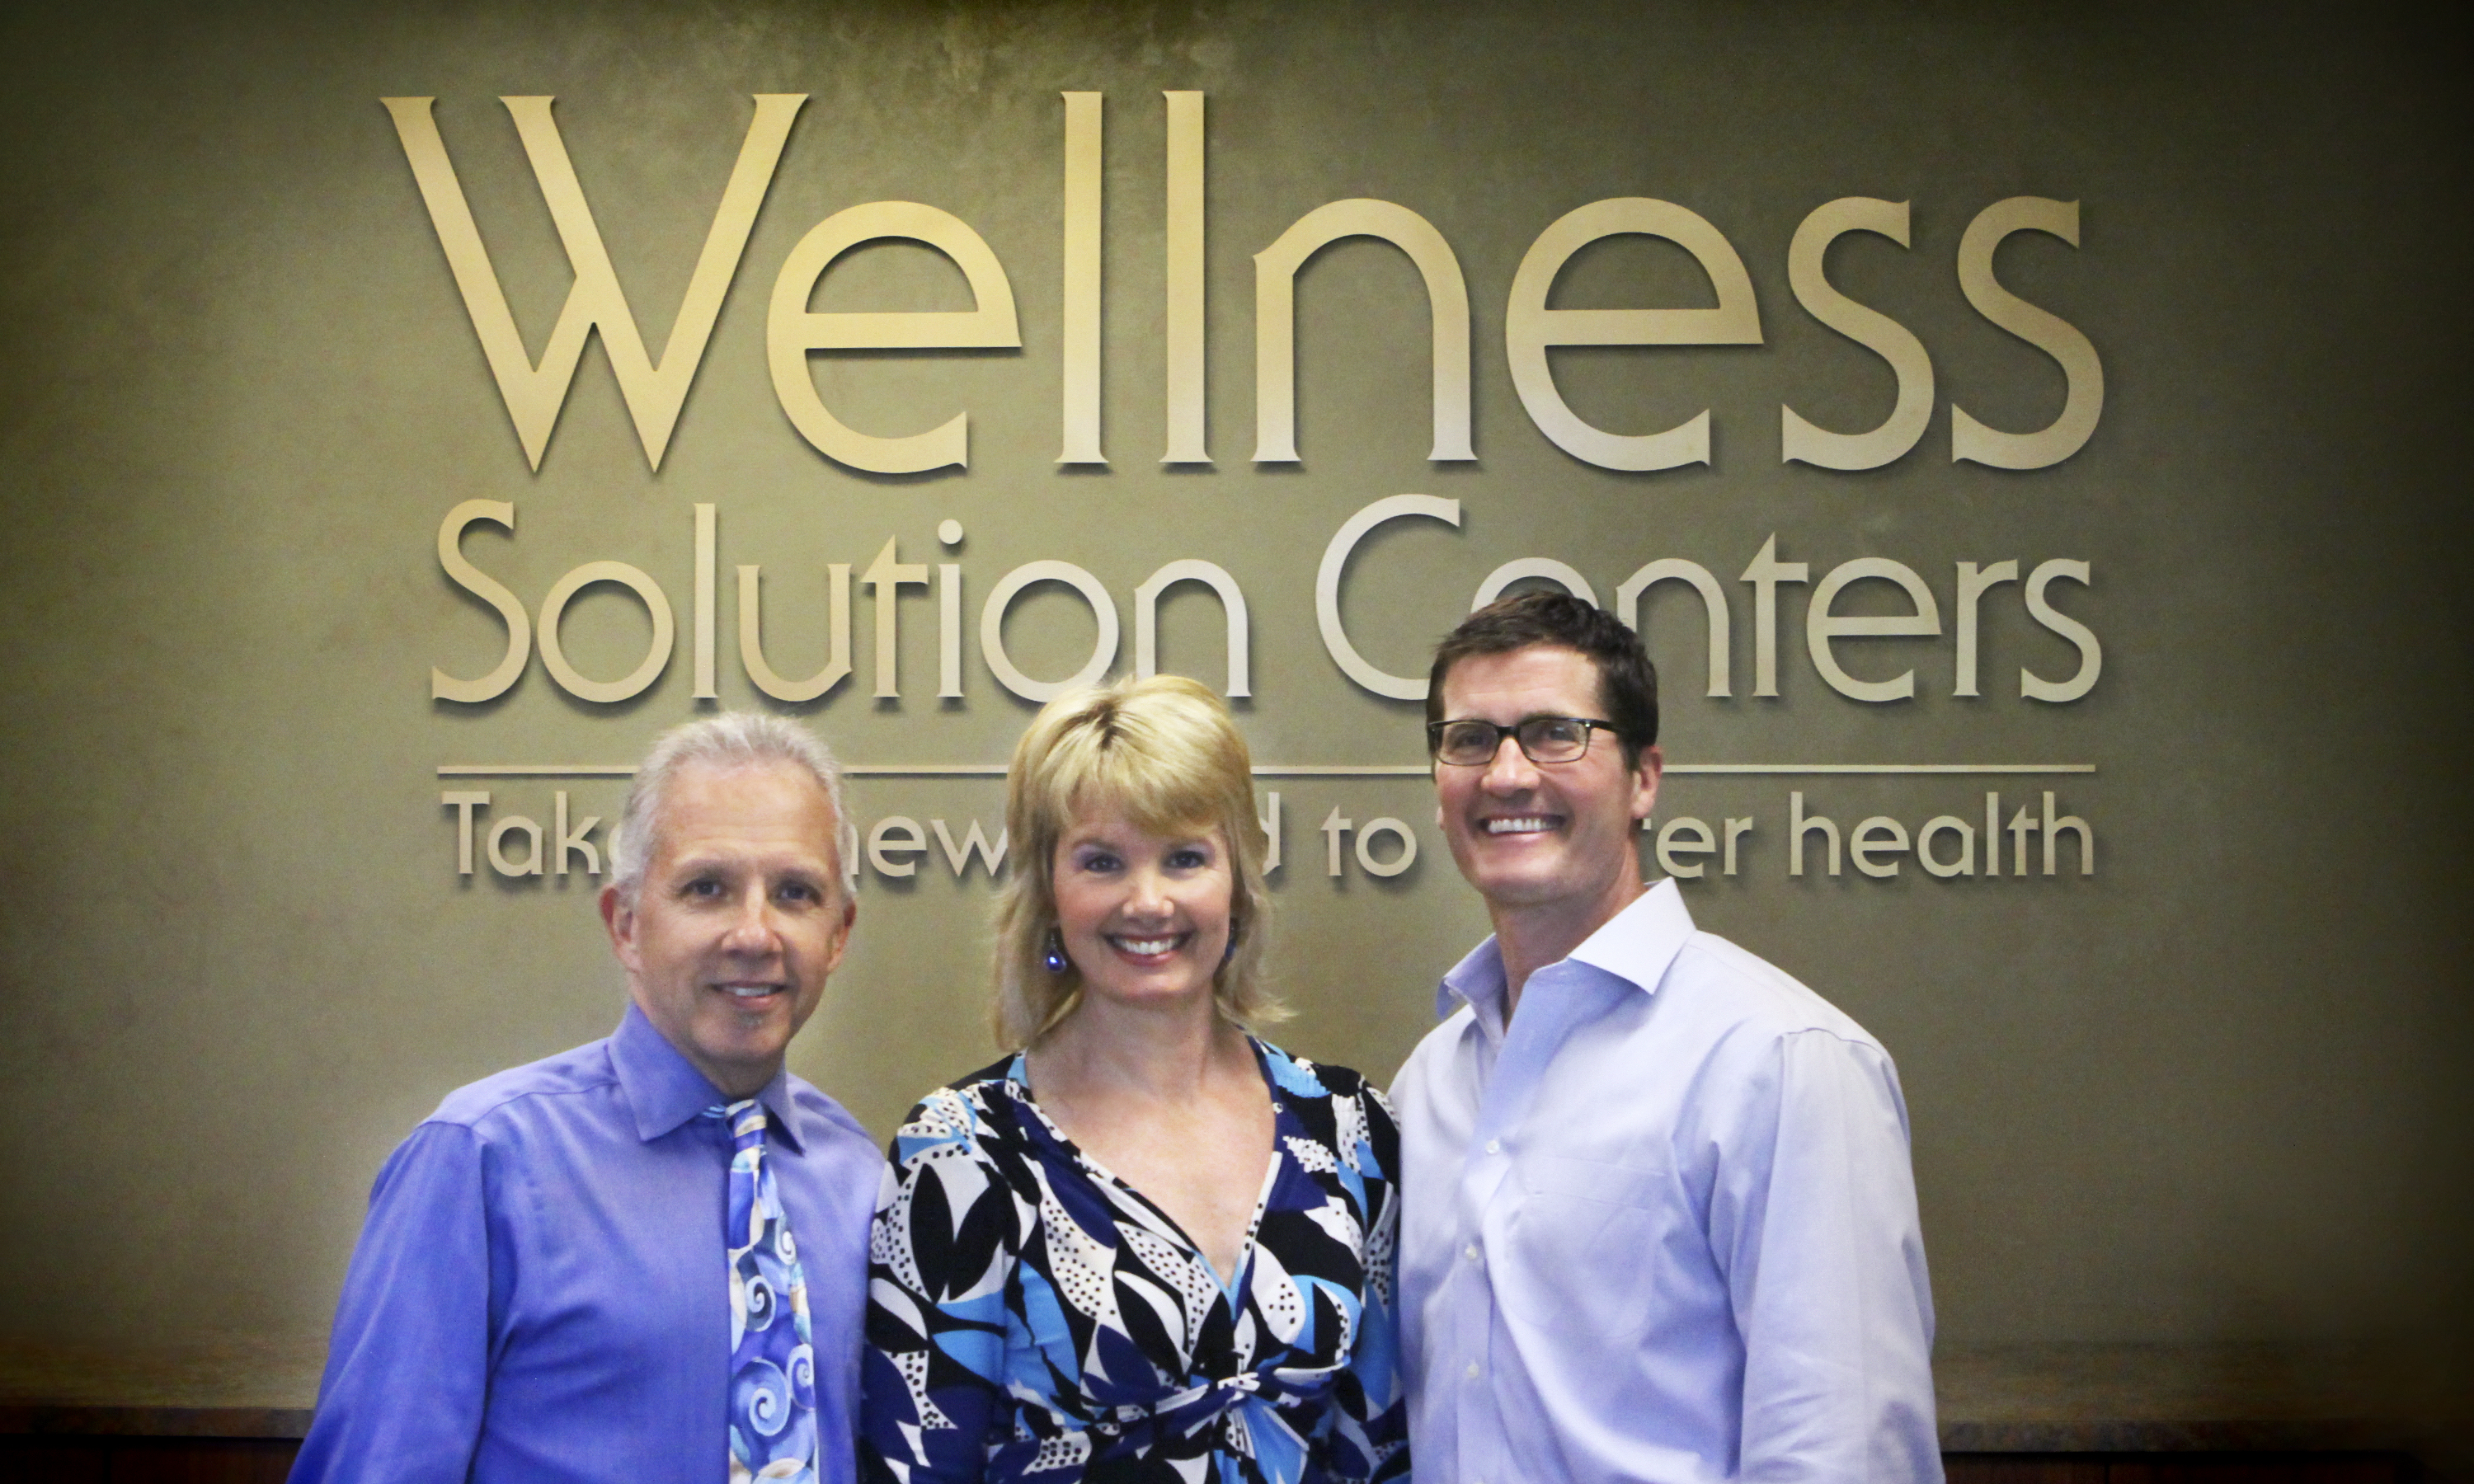 Wellness Solution Centers